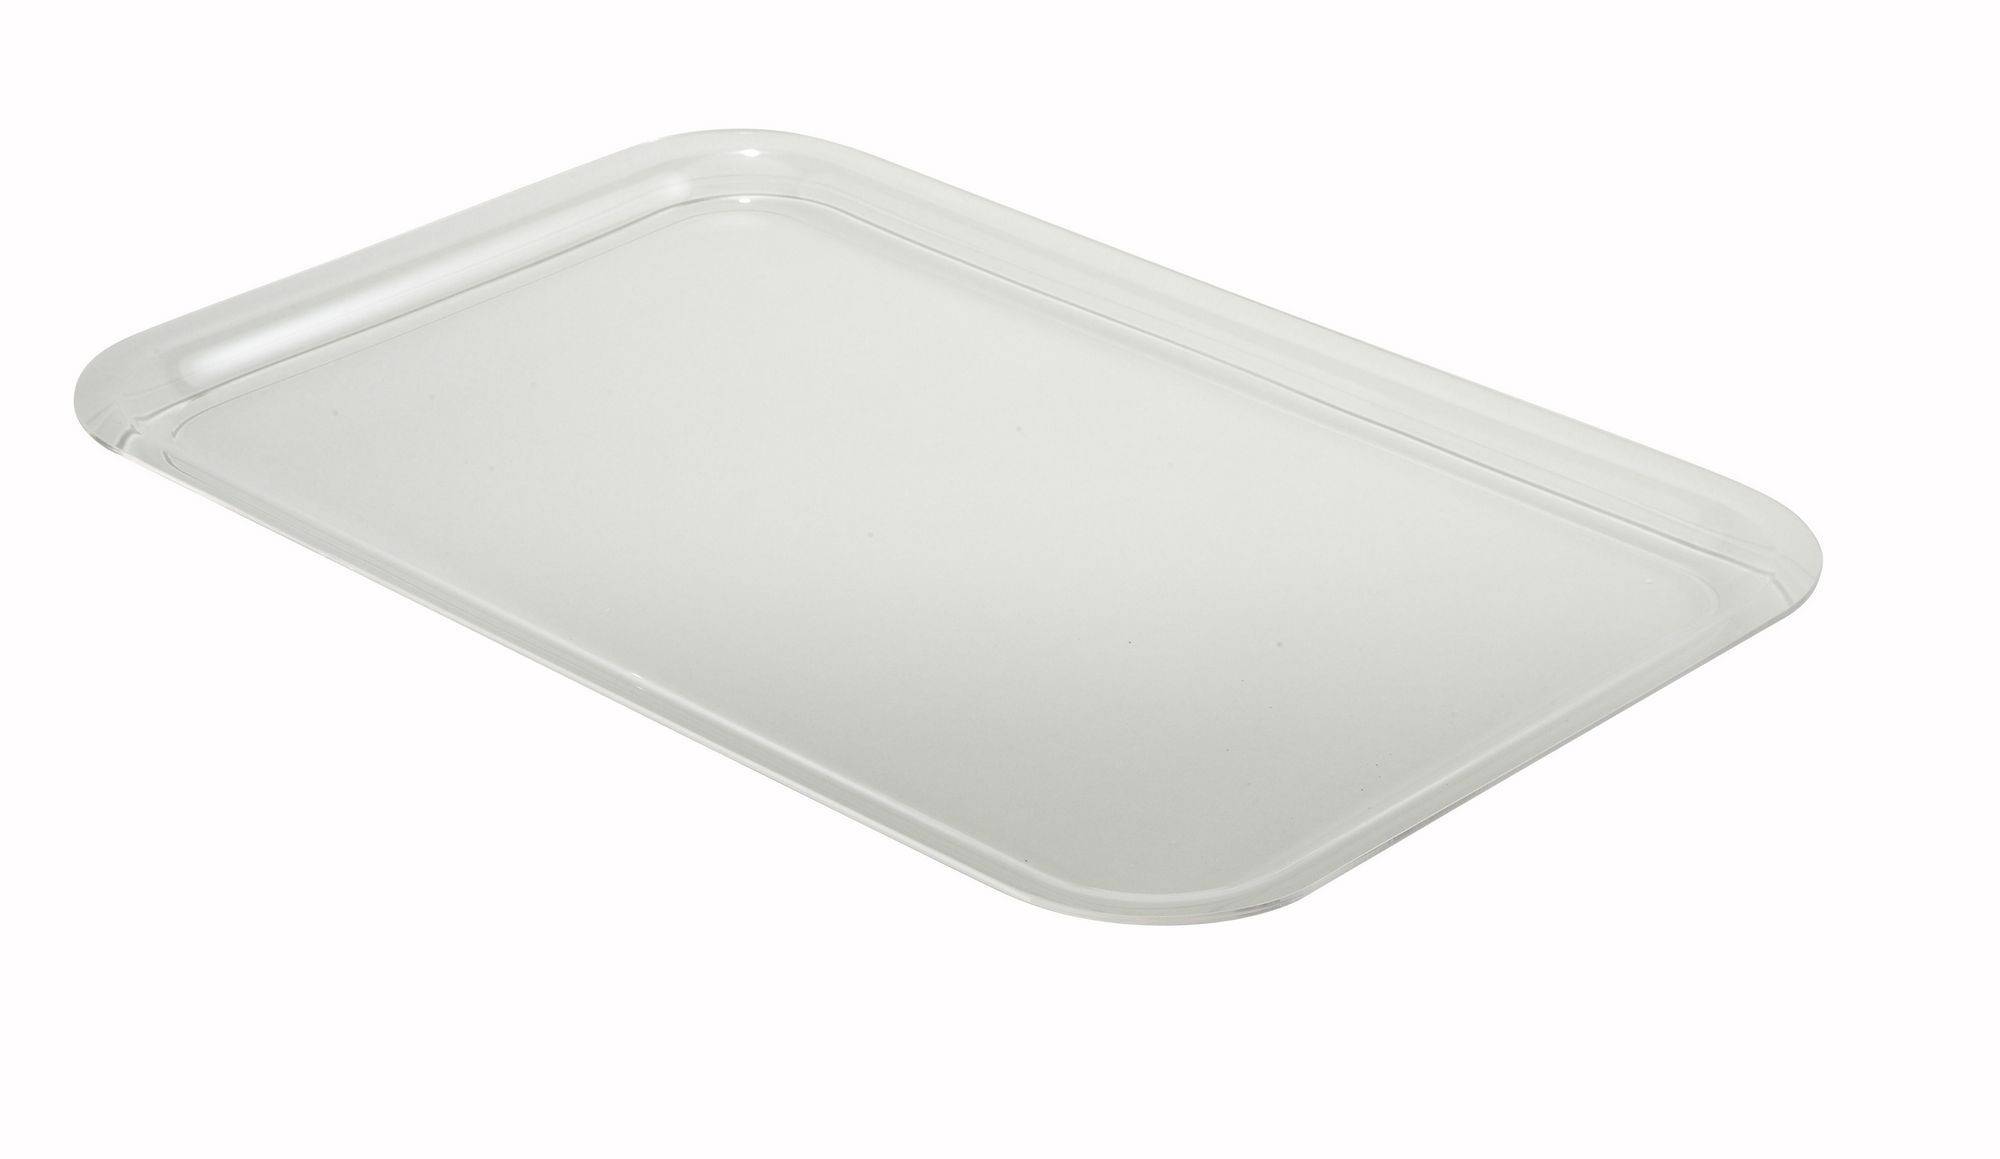 "Winco ADC-TY Replacement Acrylic Tray for Pastry Display Cabinet 13-1/4"" x 20-1/4"""